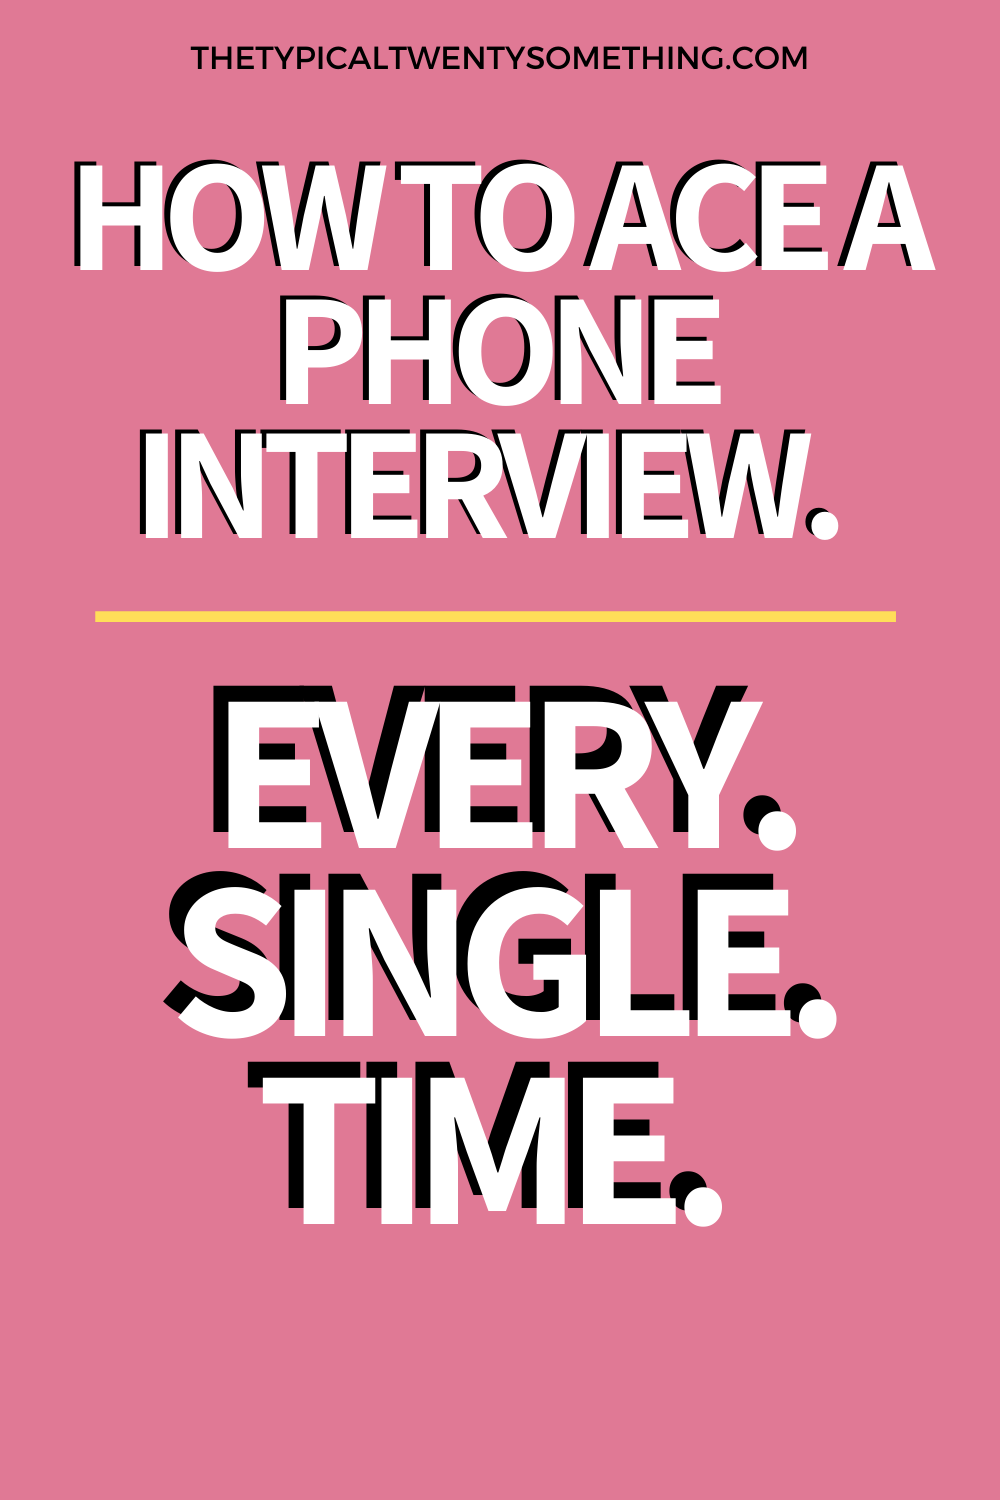 Here's how to ace a phone interview! If you have a phone interview coming up, make sure to follow these phone, zoom and video interview tips! These tips will help you answer questions about your next phone, video or zoom interivew. Interviewing is tough, so make sure you prepare for the right questions and answers! phone interview questions, phone interview telephone, phone interview for nurses, job interview tips over the phone, dream job, preparing for a phone interivew